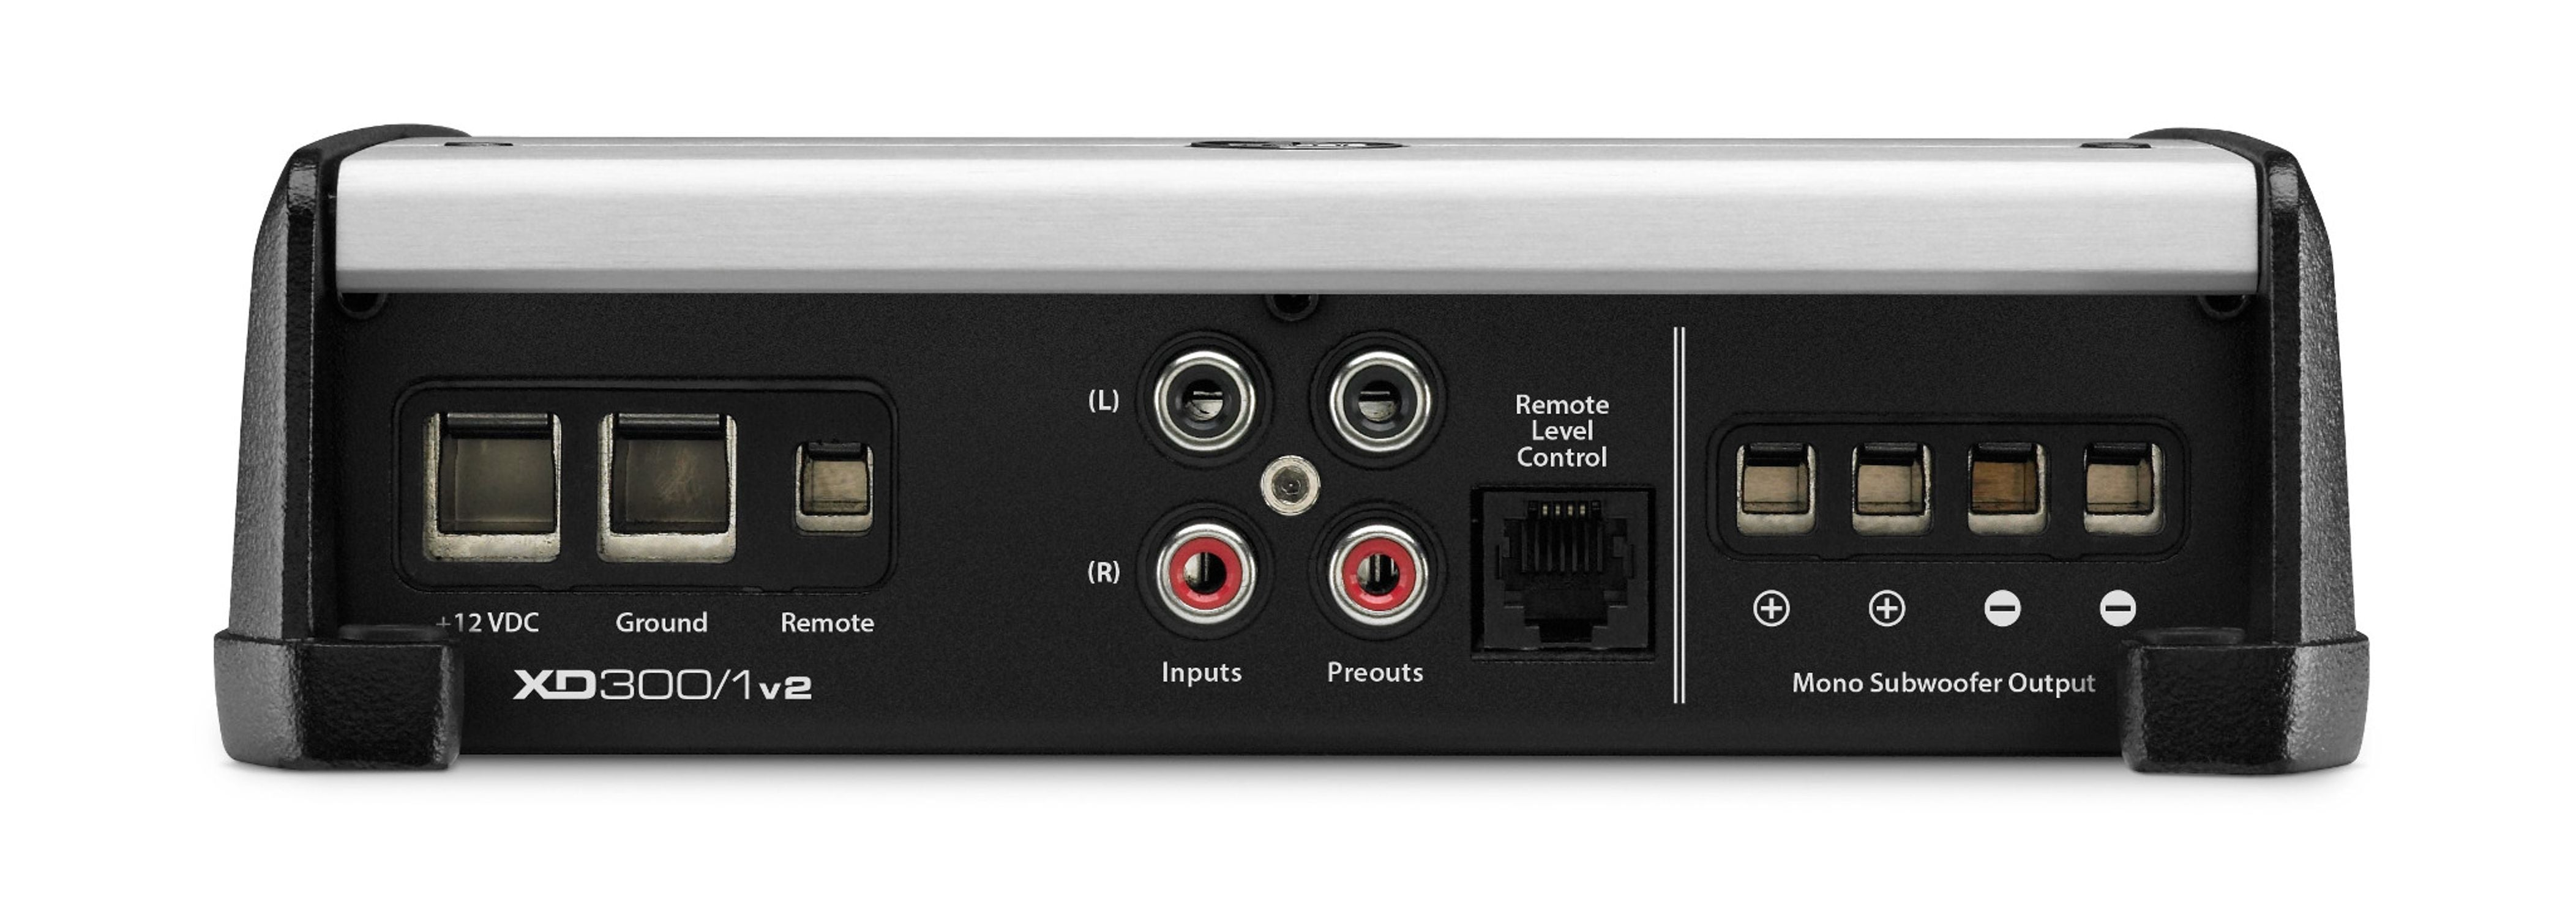 Connection Panel of XD300/1v2 Amplifier with Control Panel Cover on